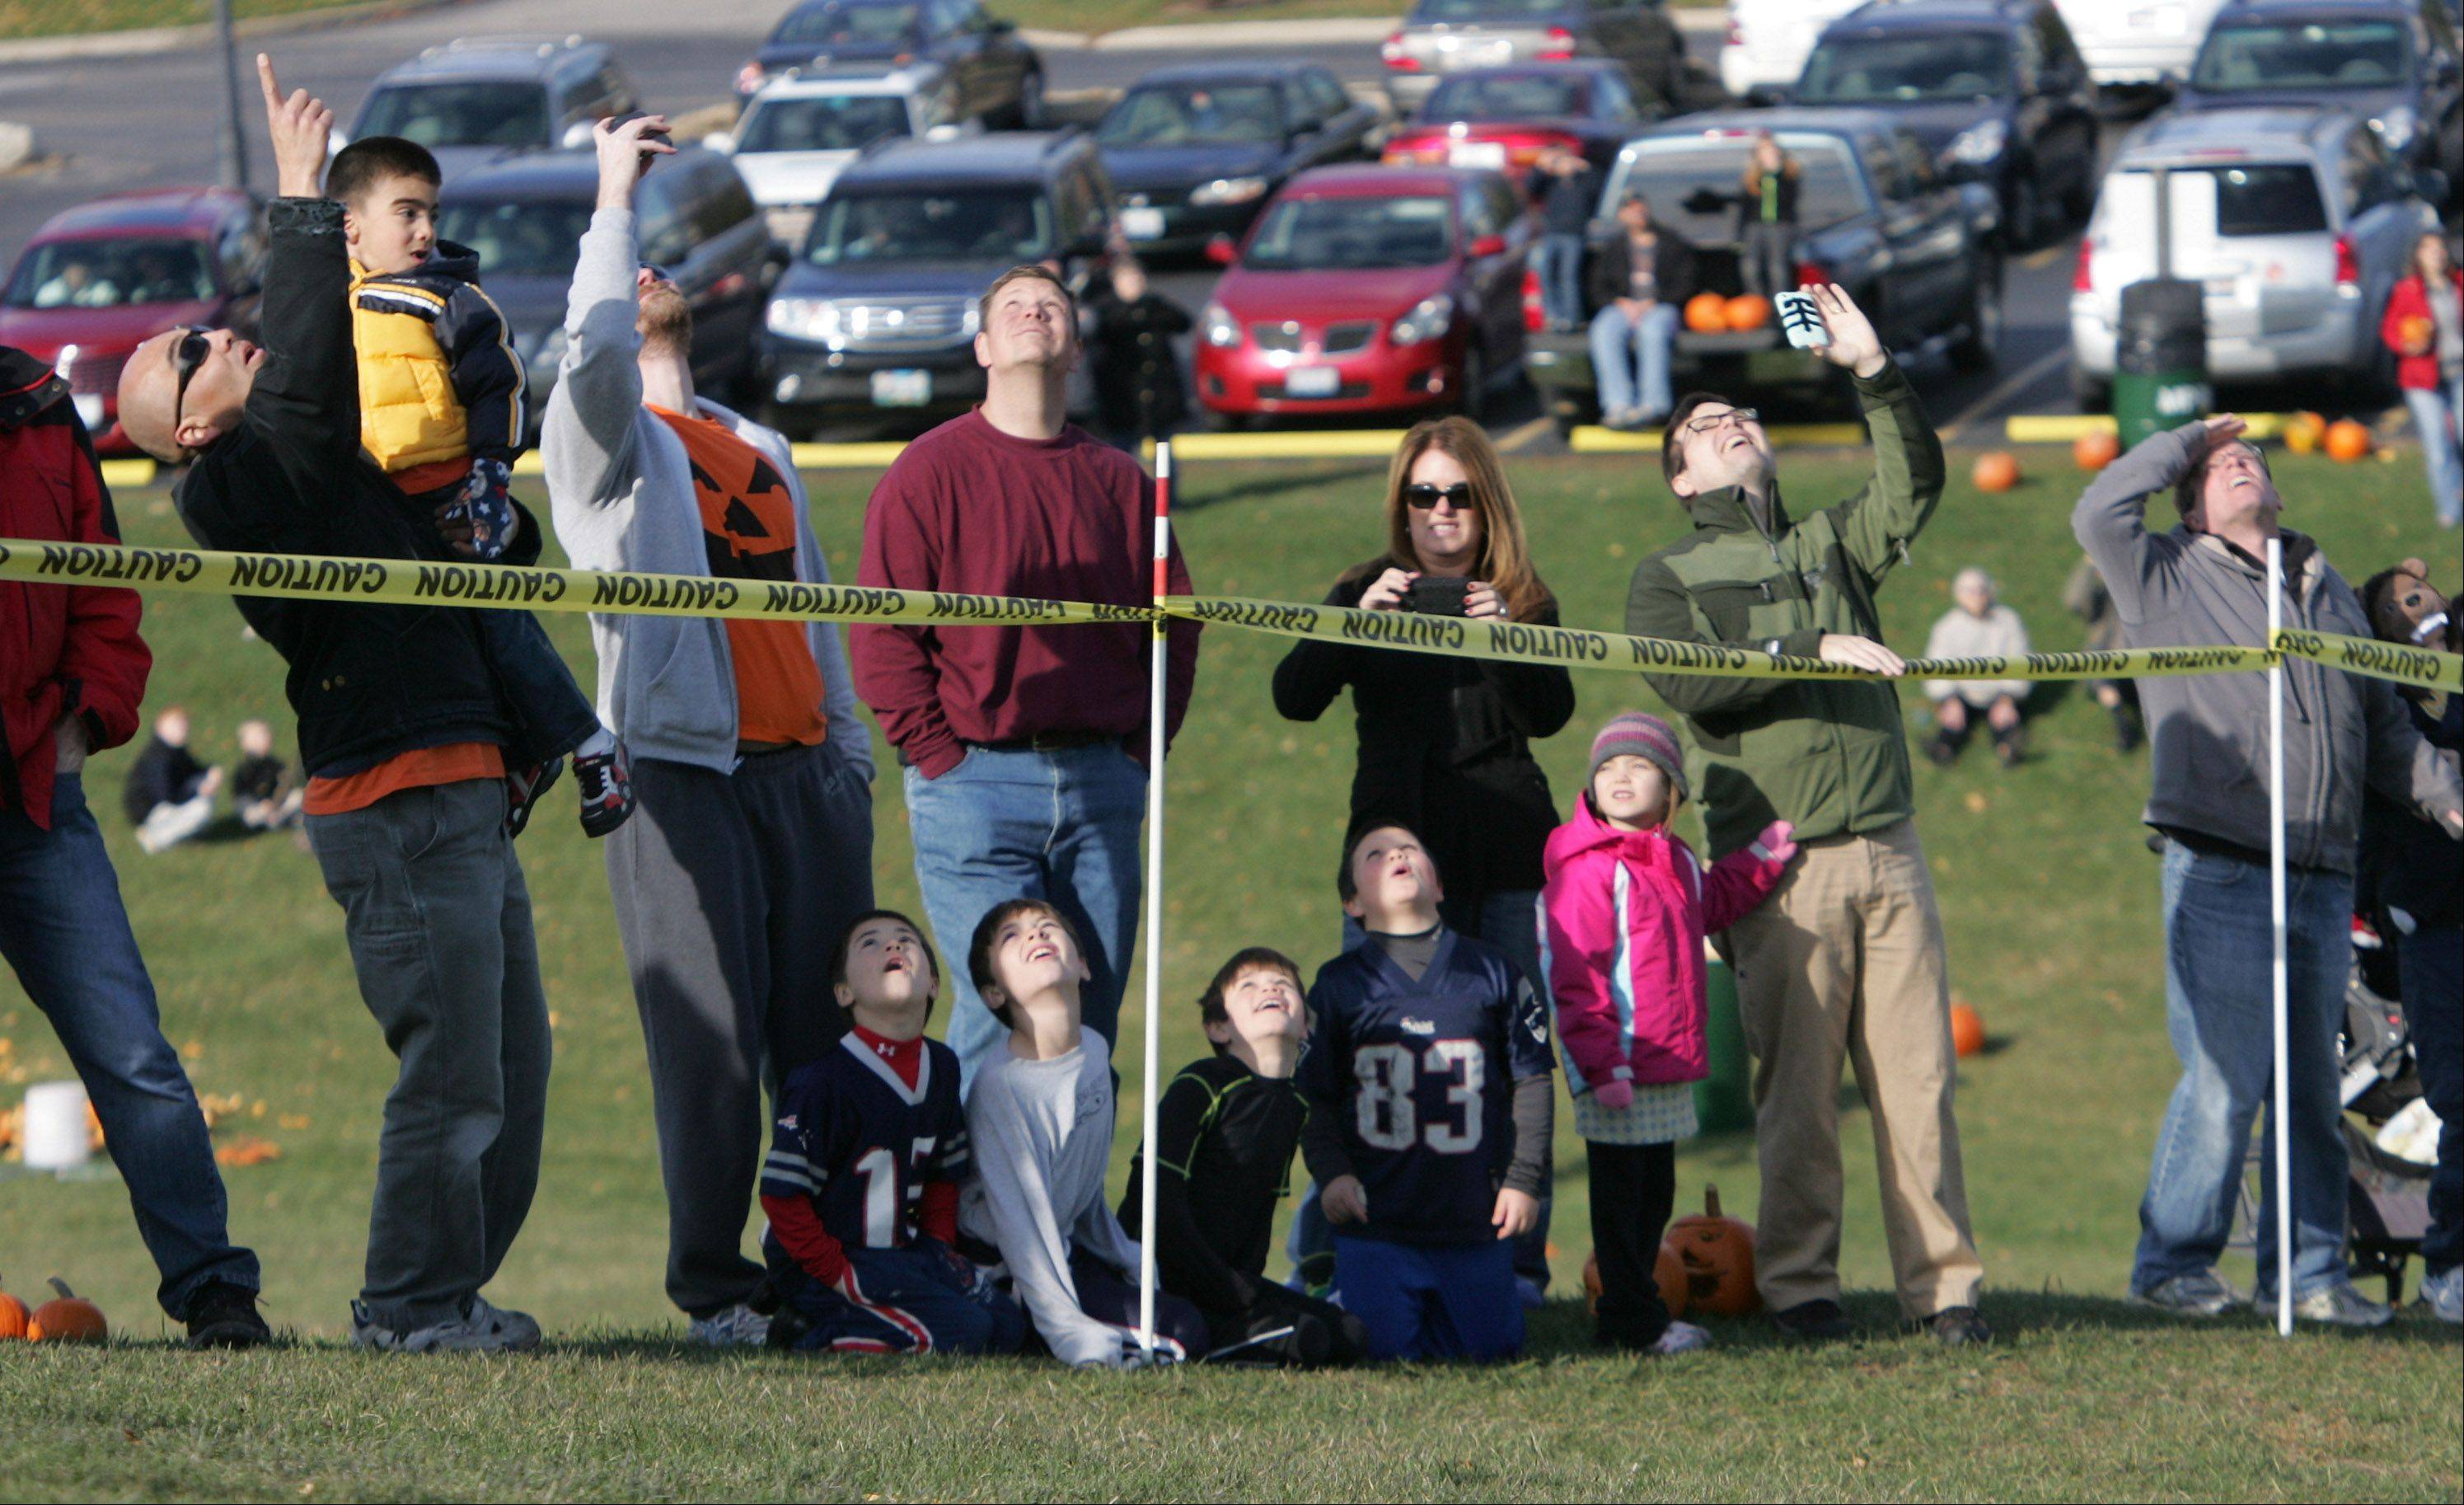 Spectators watch as a pumpkin flies through the air during the annual Pumpkin Drop hosted Sunday by the Mundelein Park & Recreation District at Keith Mione Community Park. Families and children brought their Halloween pumpkins and rolled them, smashed them and launched them using the Big Red trebuchet designed by Mundelein High School students.